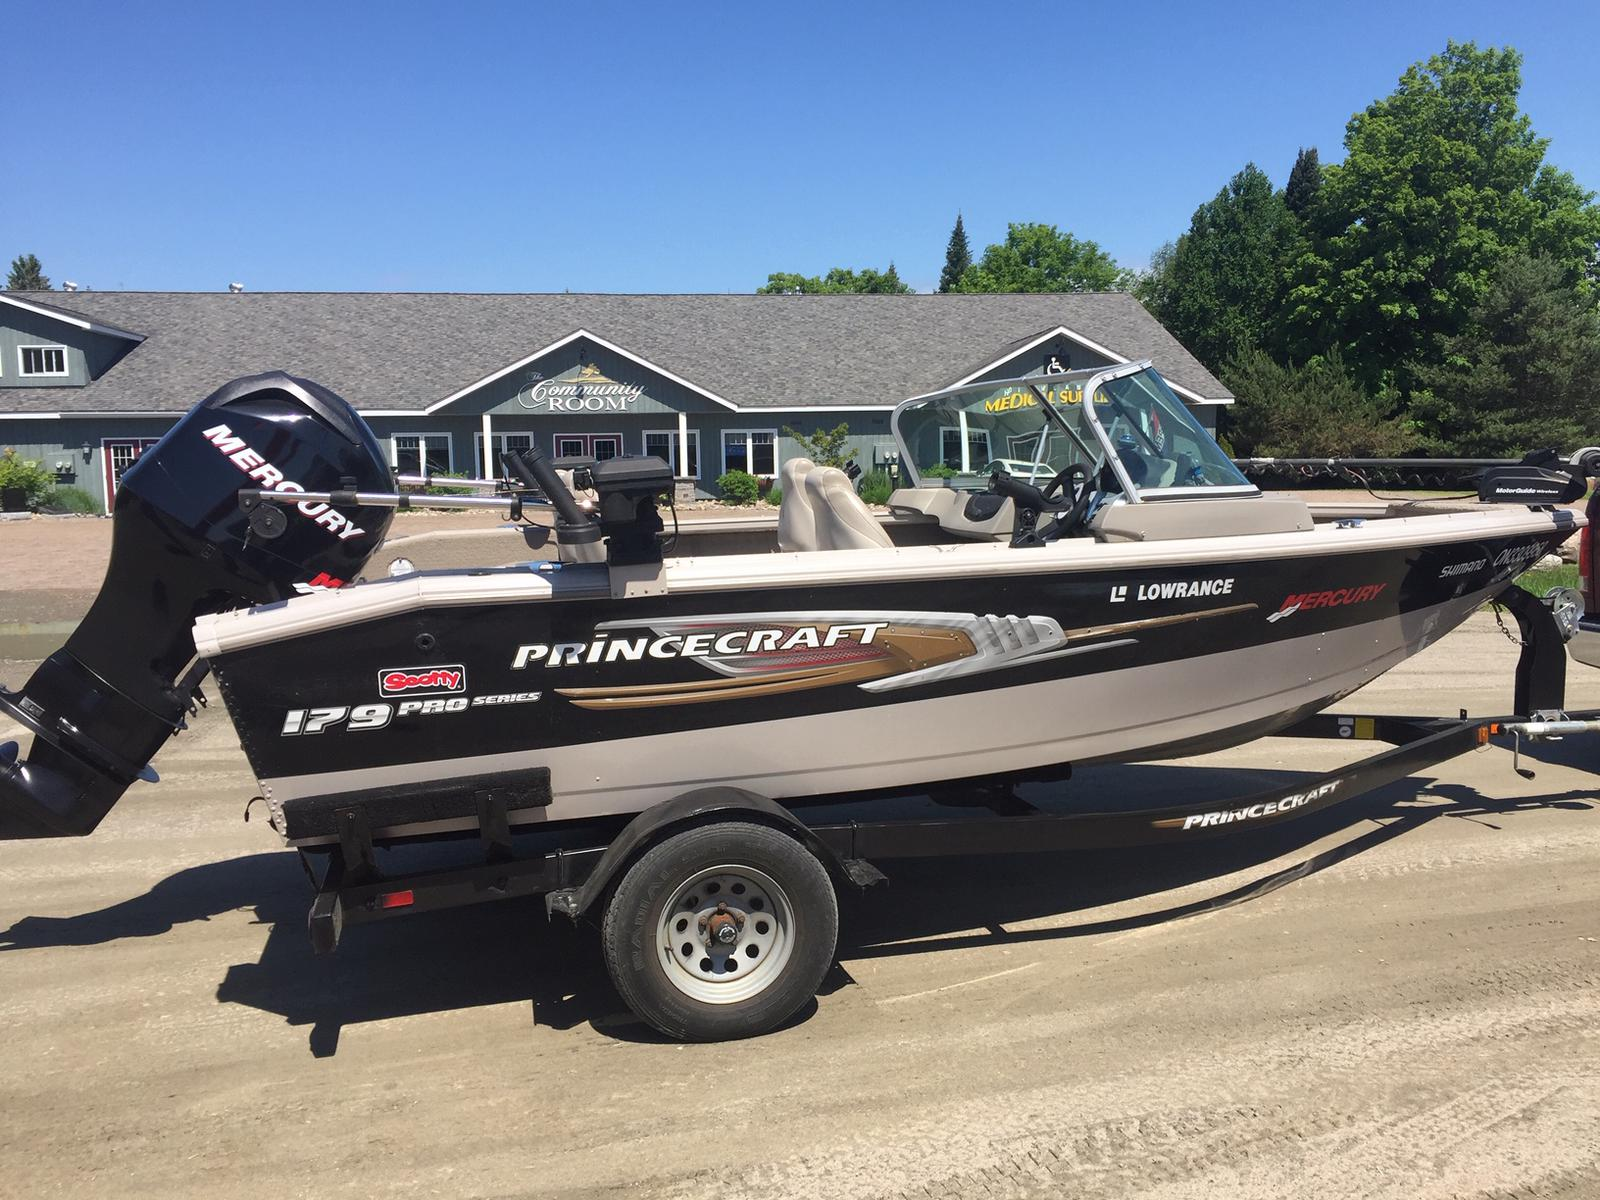 2011 PRINCECRAFT 179 PRO SERIES for sale